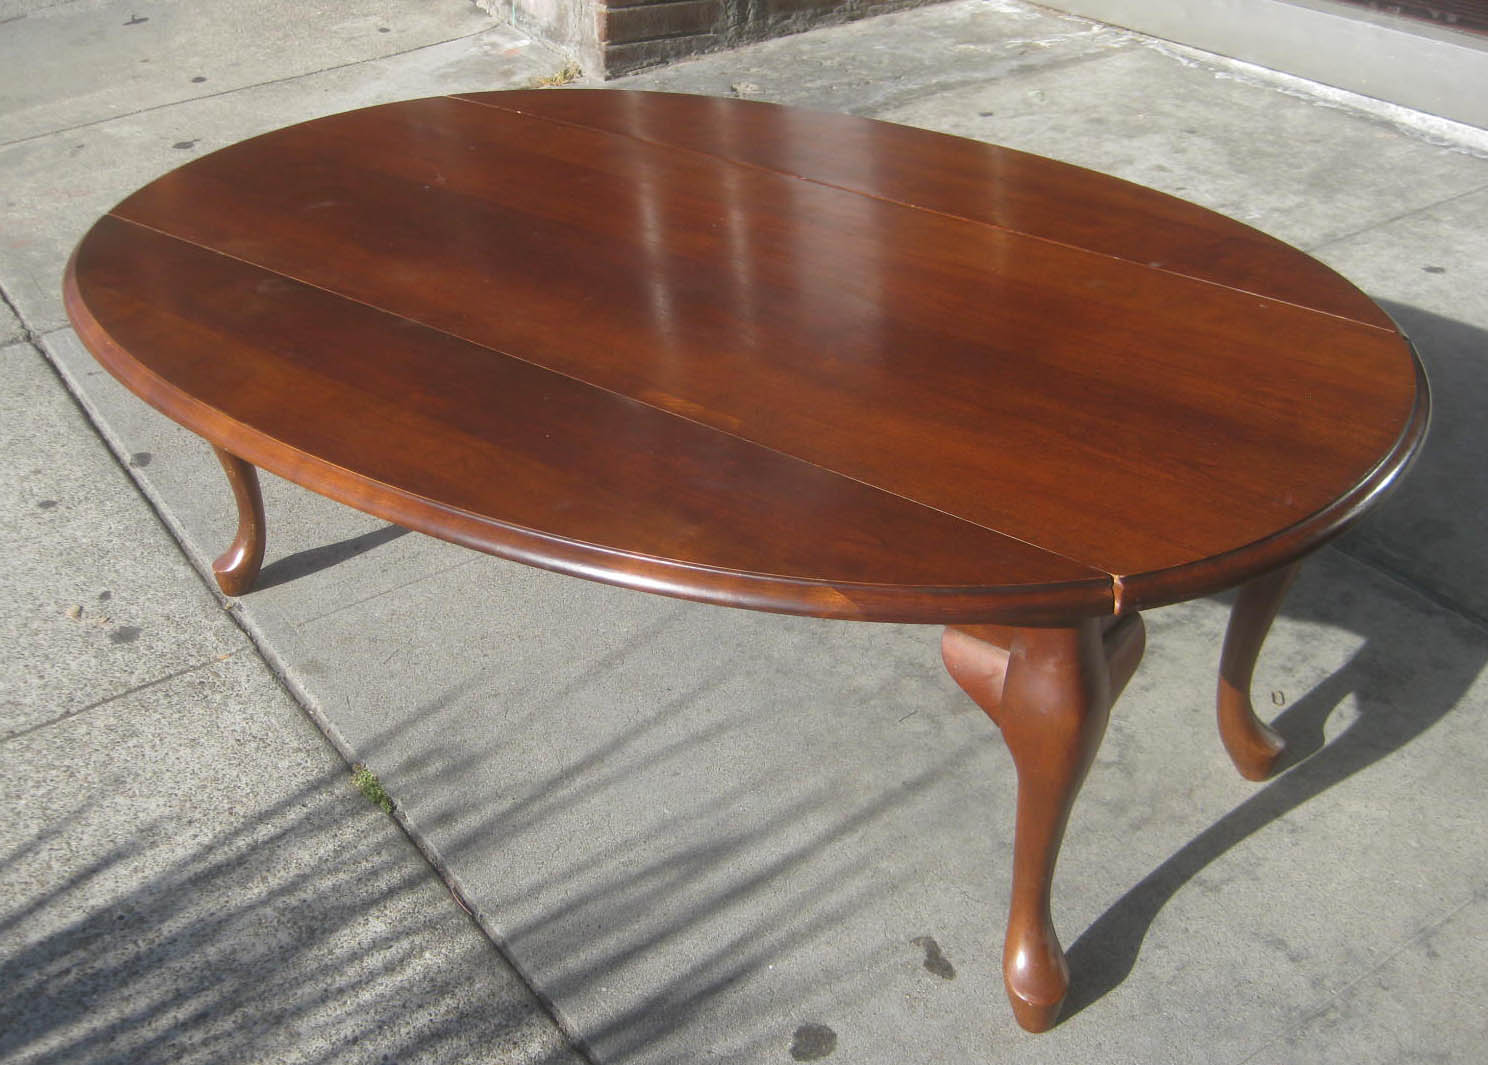 Uhuru Furniture Collectibles Sold Drop Leaf Coffee Table 85